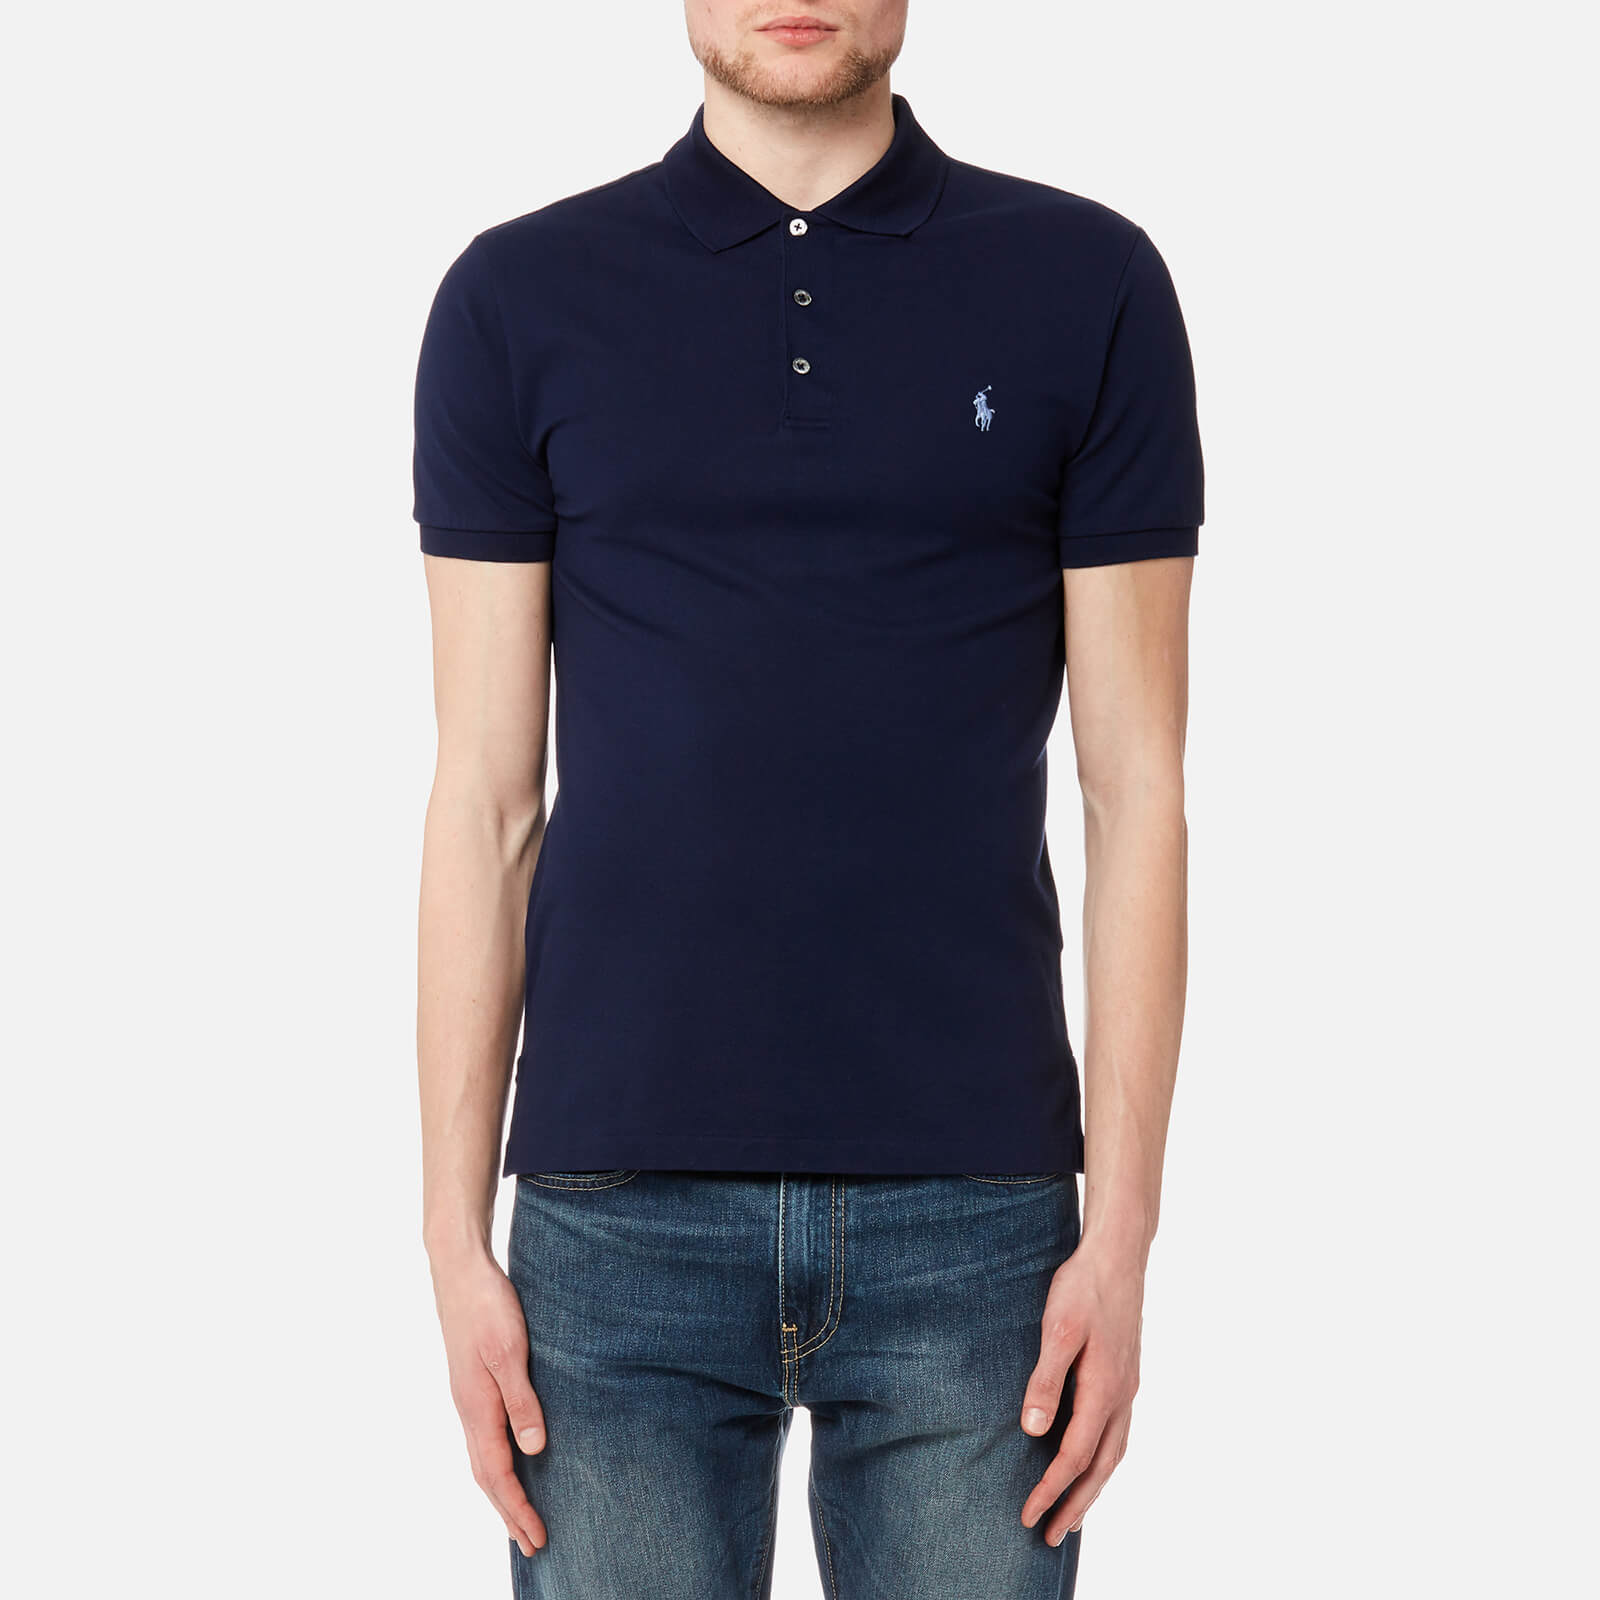 a5fad91df3f Polo Ralph Lauren Men s Slim Fit Polo Shirt - French Navy - Free UK  Delivery over £50